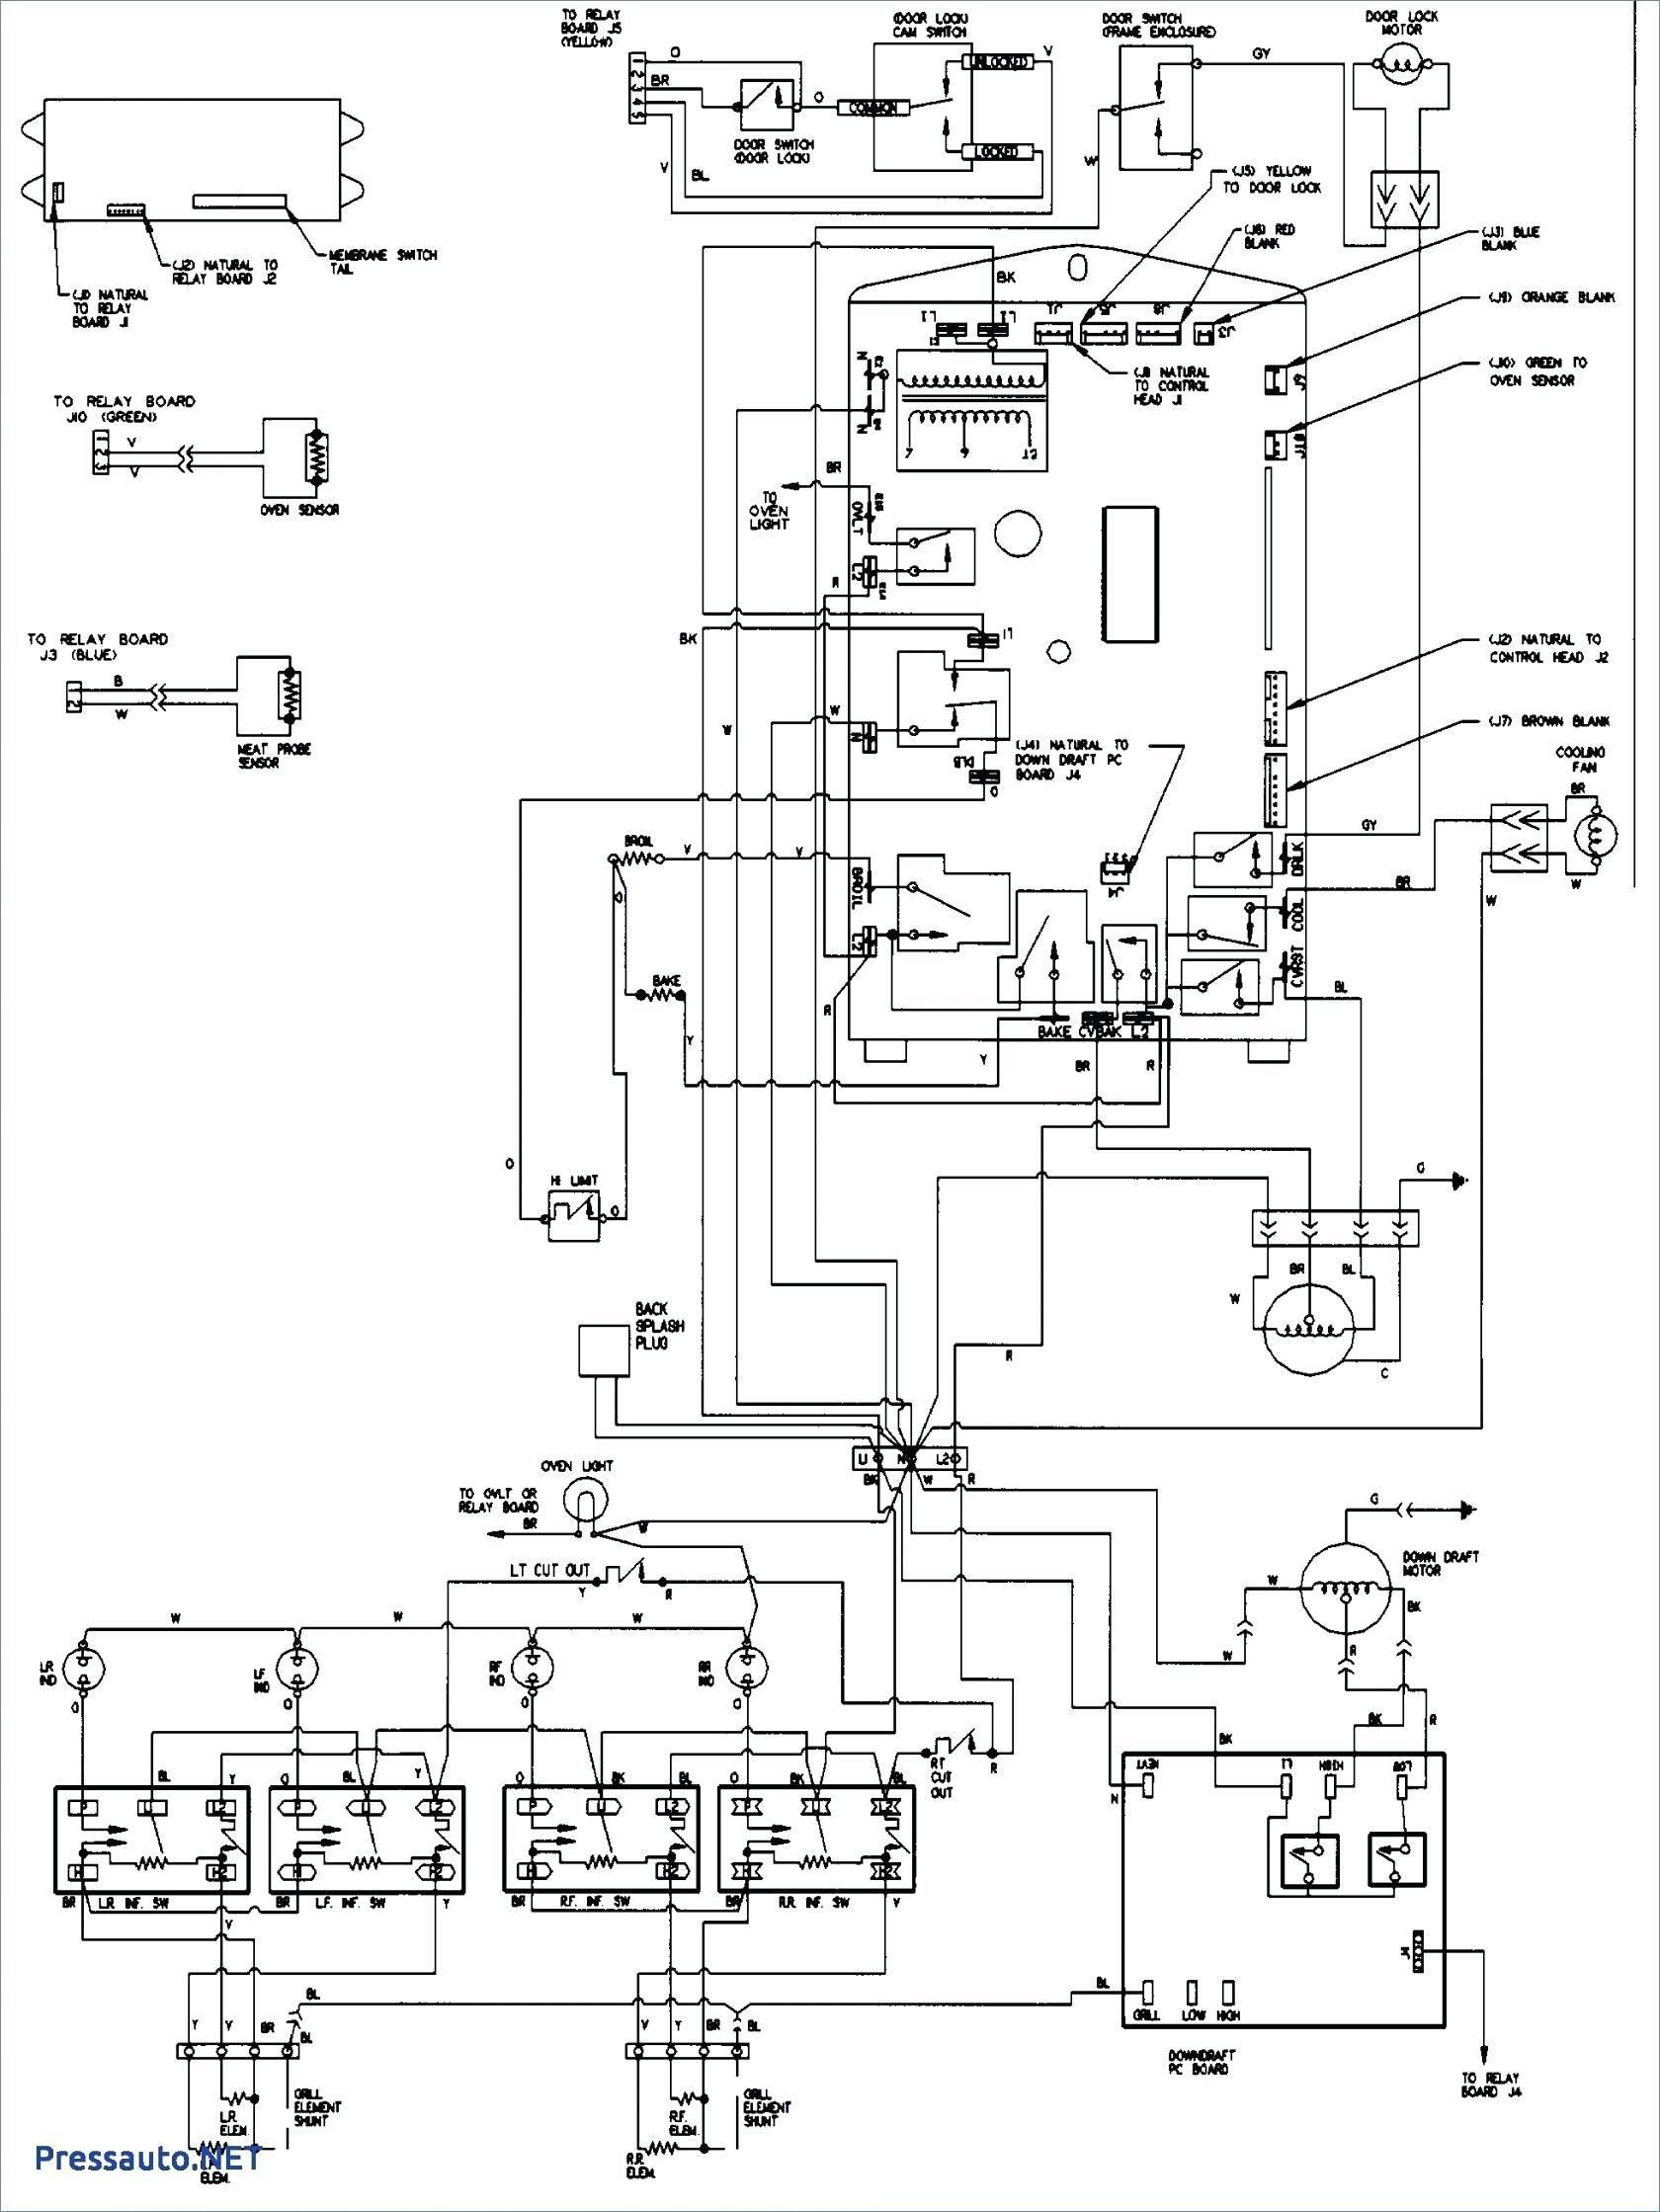 Lovely Wiring Diagram Gas Furnace  Diagrams  Digramssample  Diagramimages  Wiringdiagramsample